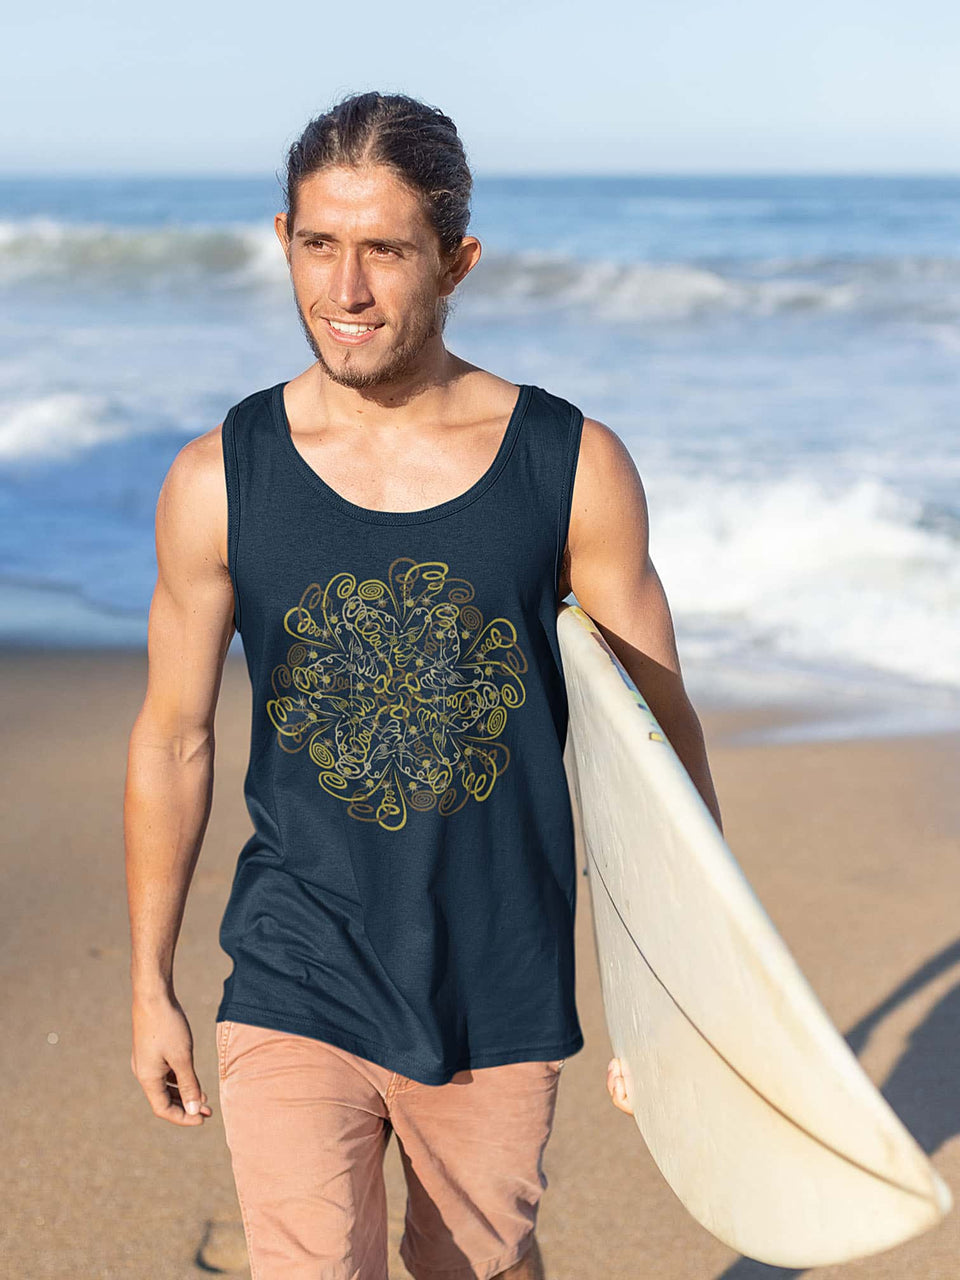 Dymitry Made To Order Men Tank Top - Navy Blue